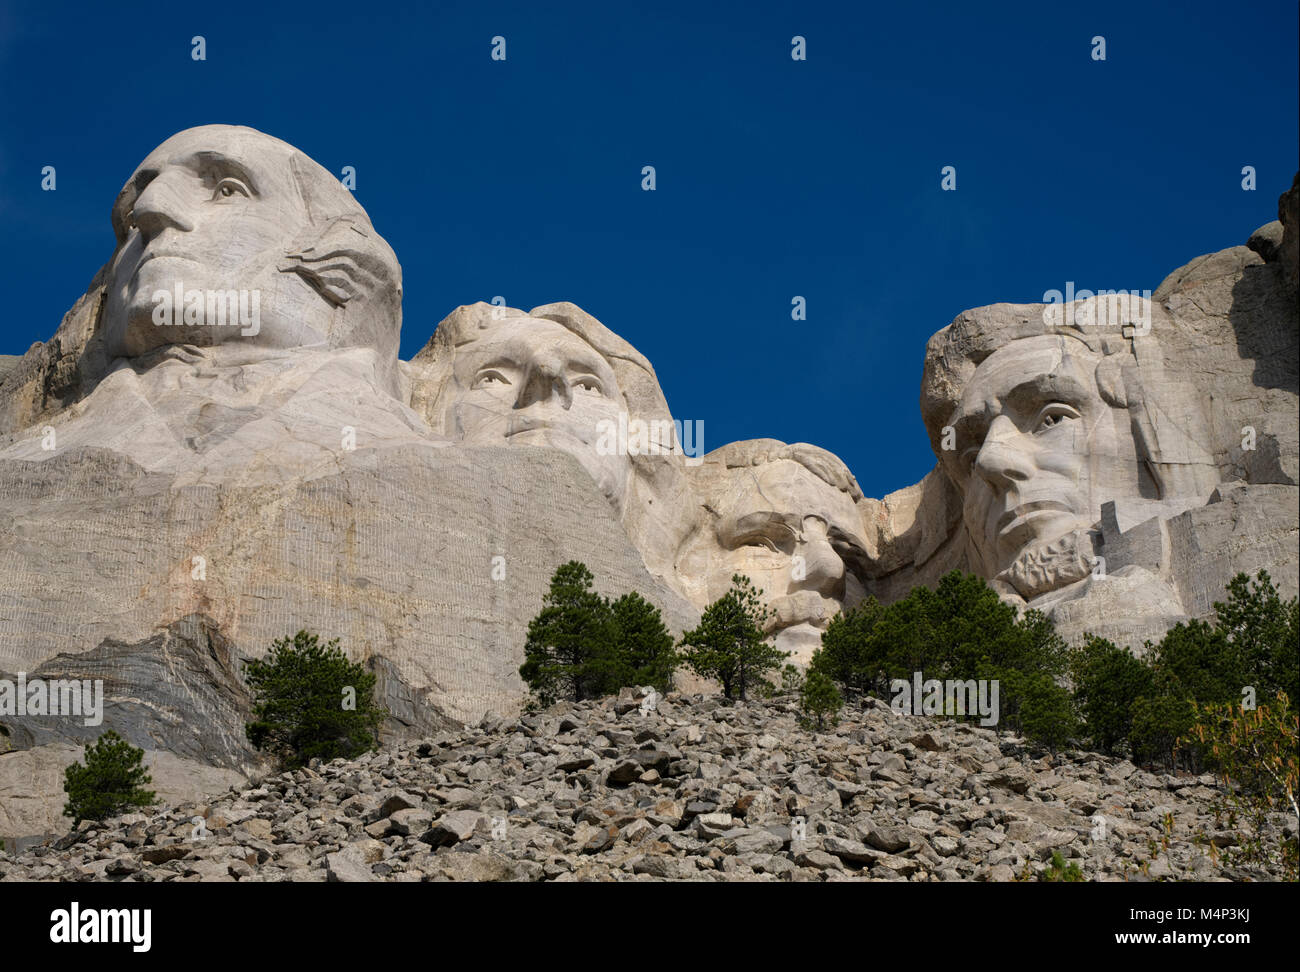 Mont Rushmore Photo Stock